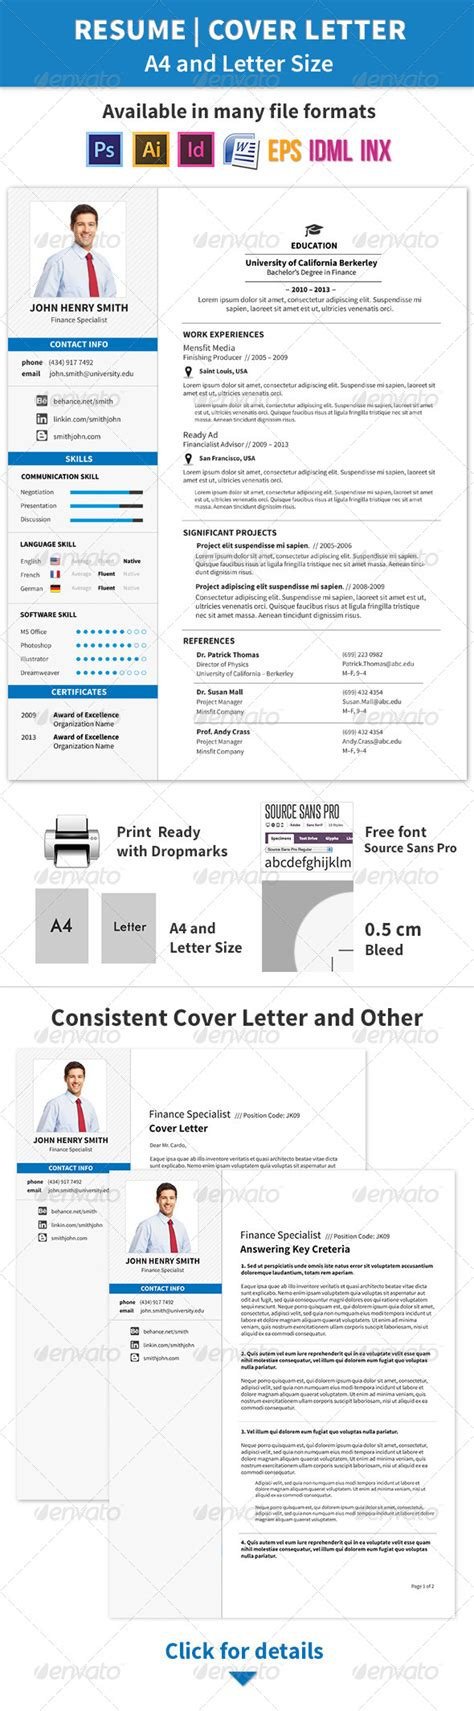 resume and cover letter a4 and letter sizes letter